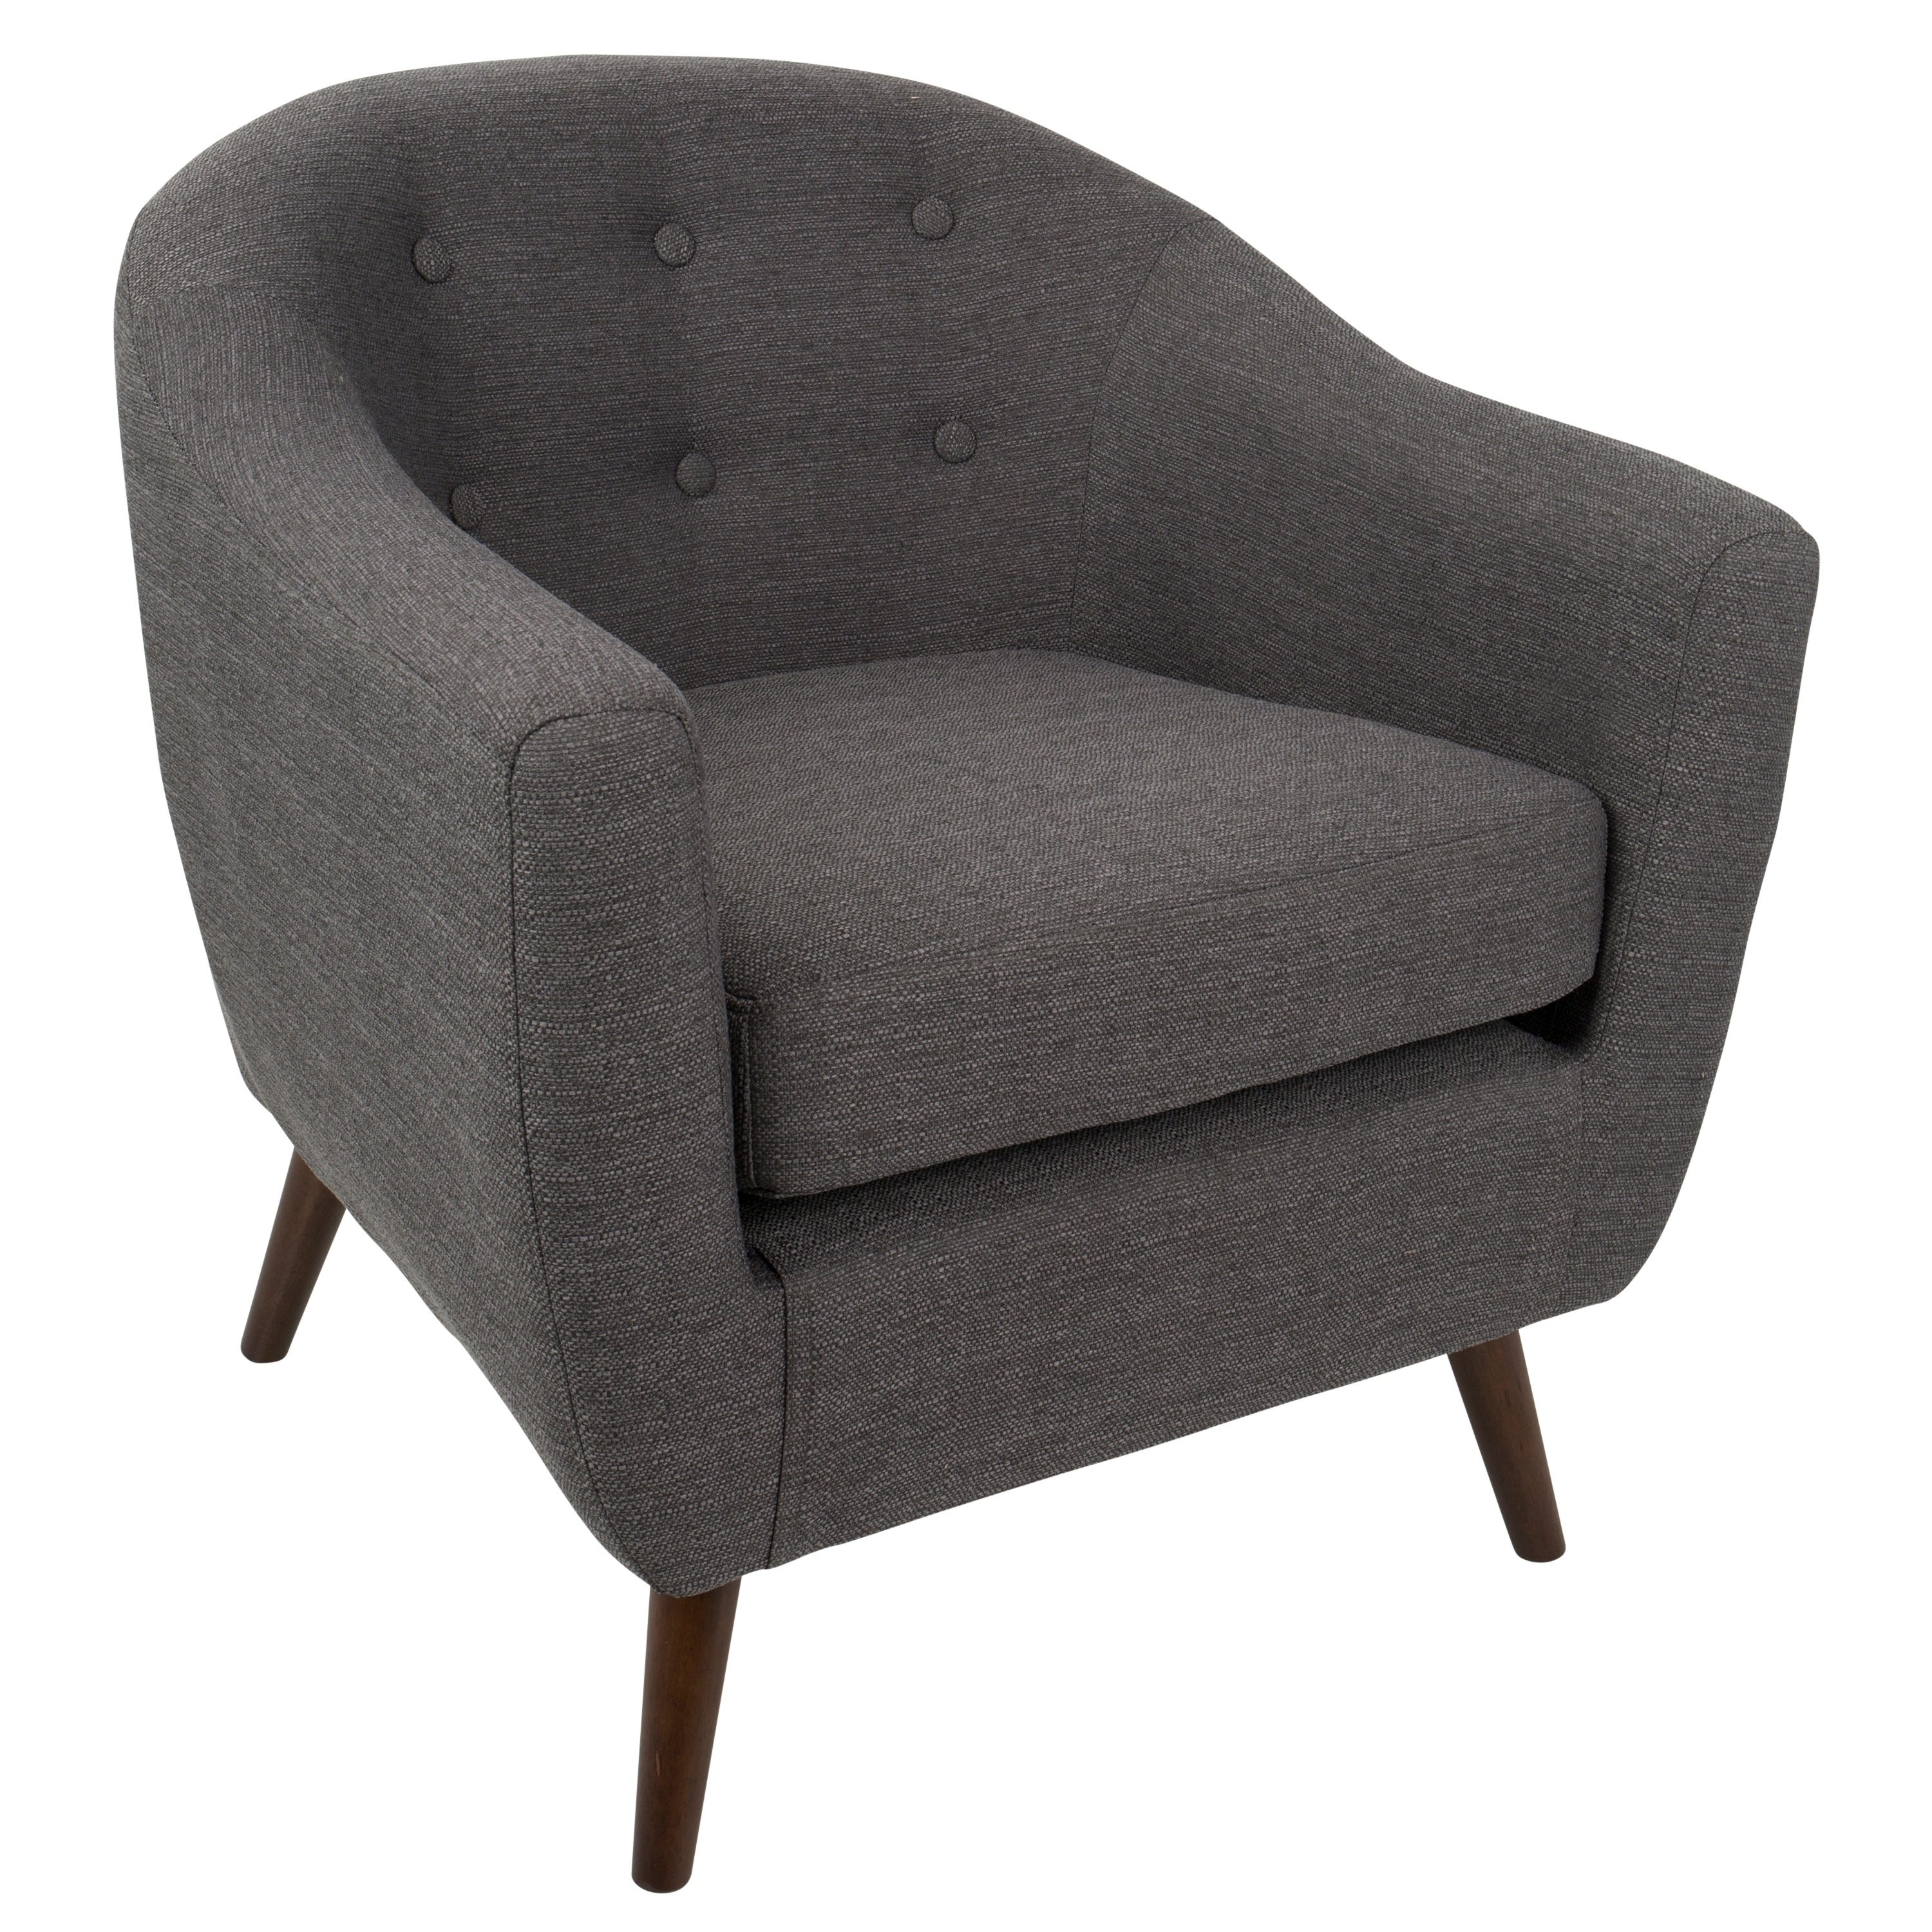 Strick & Bolton Shearing Mid Century Modern Accent Chair  Free